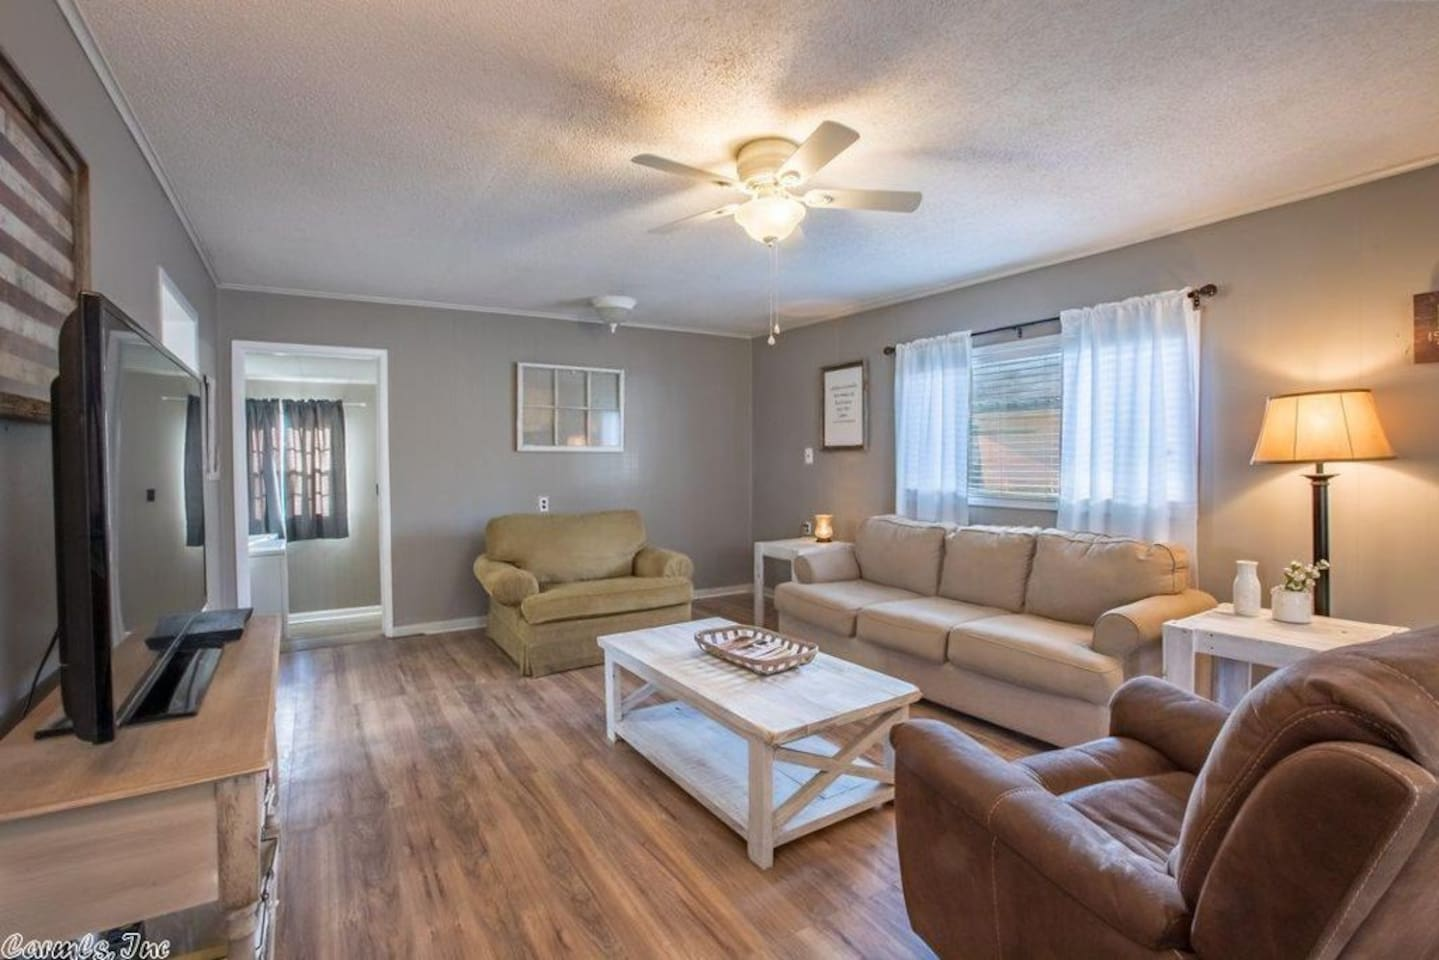 A large flat screen television and sofas for you to stretch out and relax